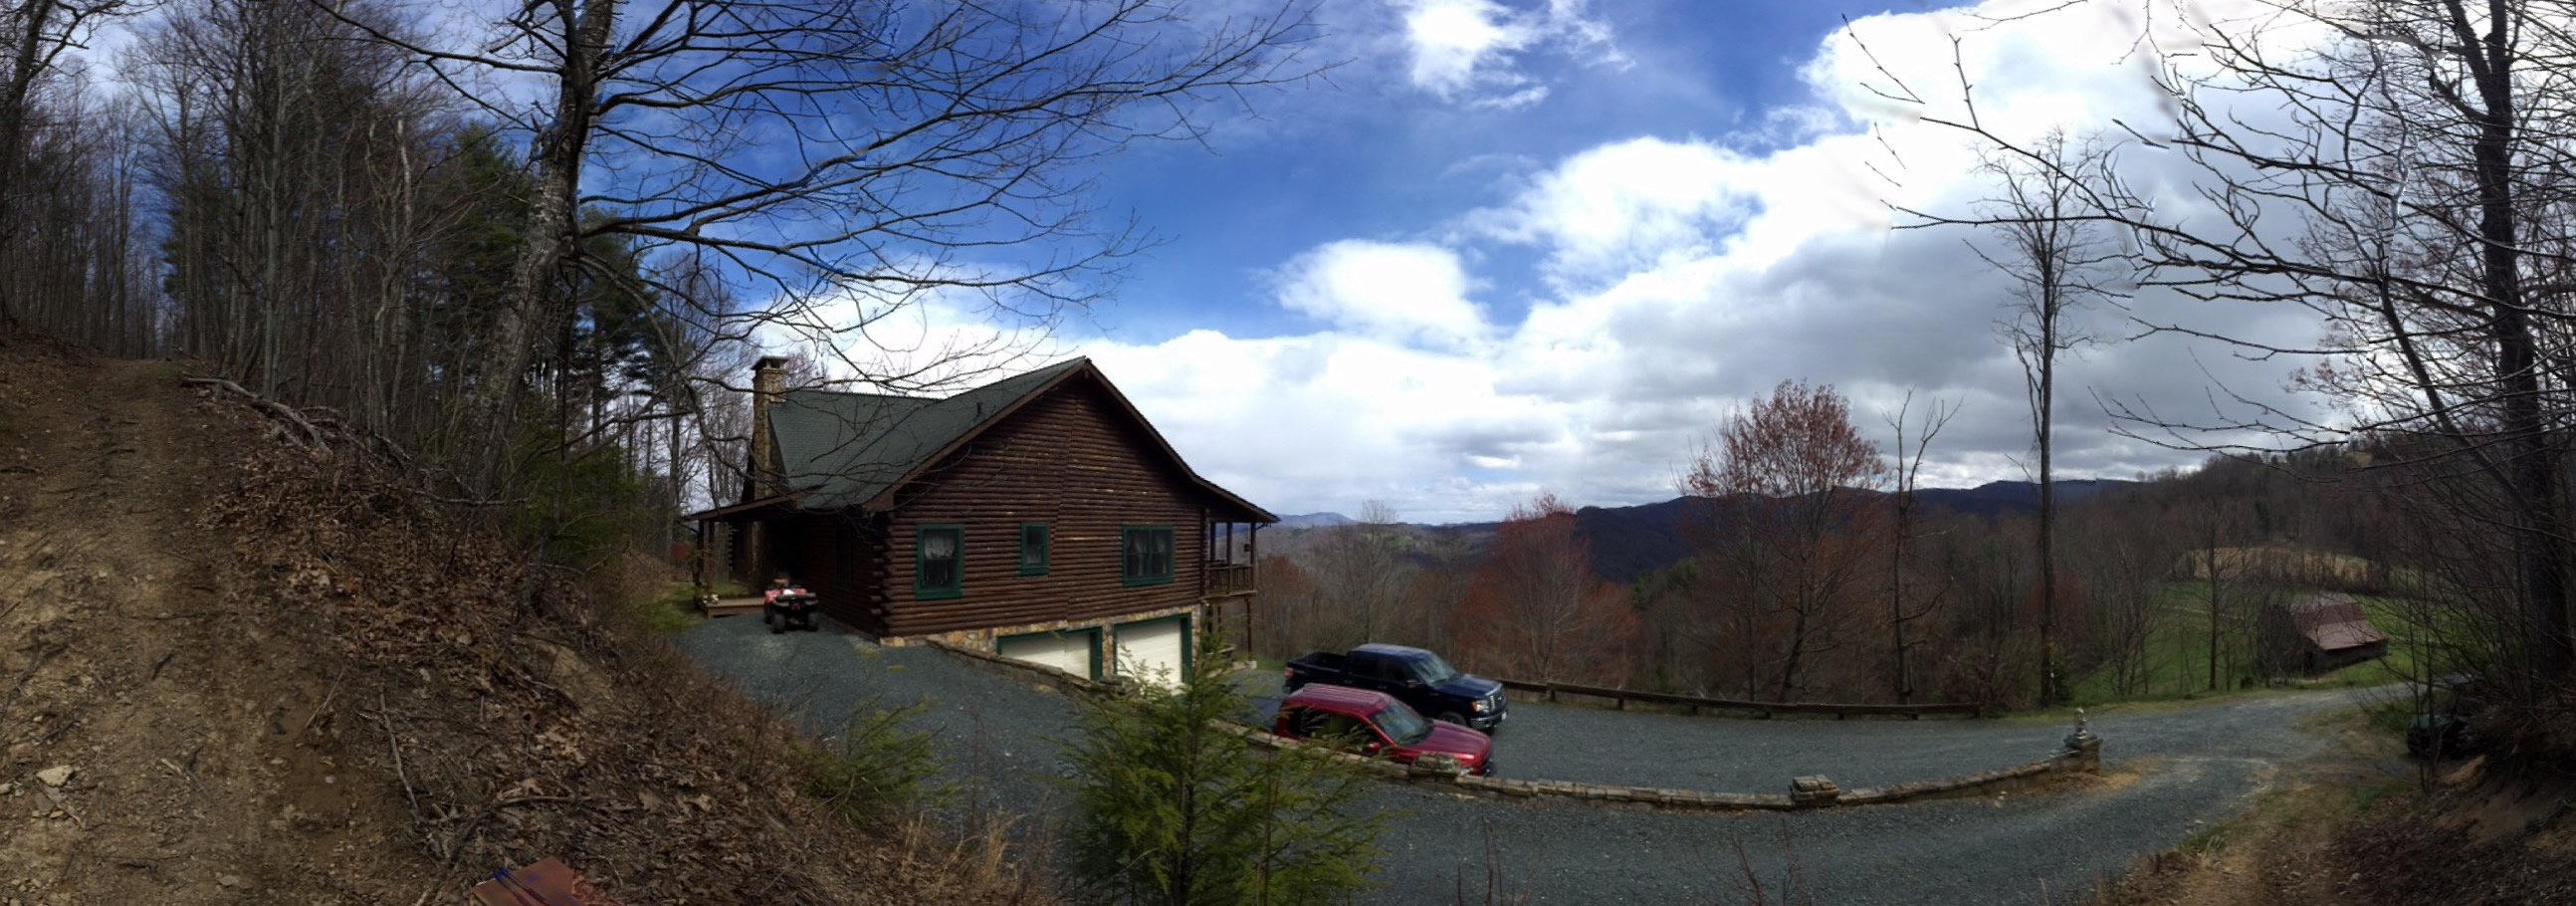 Mountain farm for sale in Avery County NC